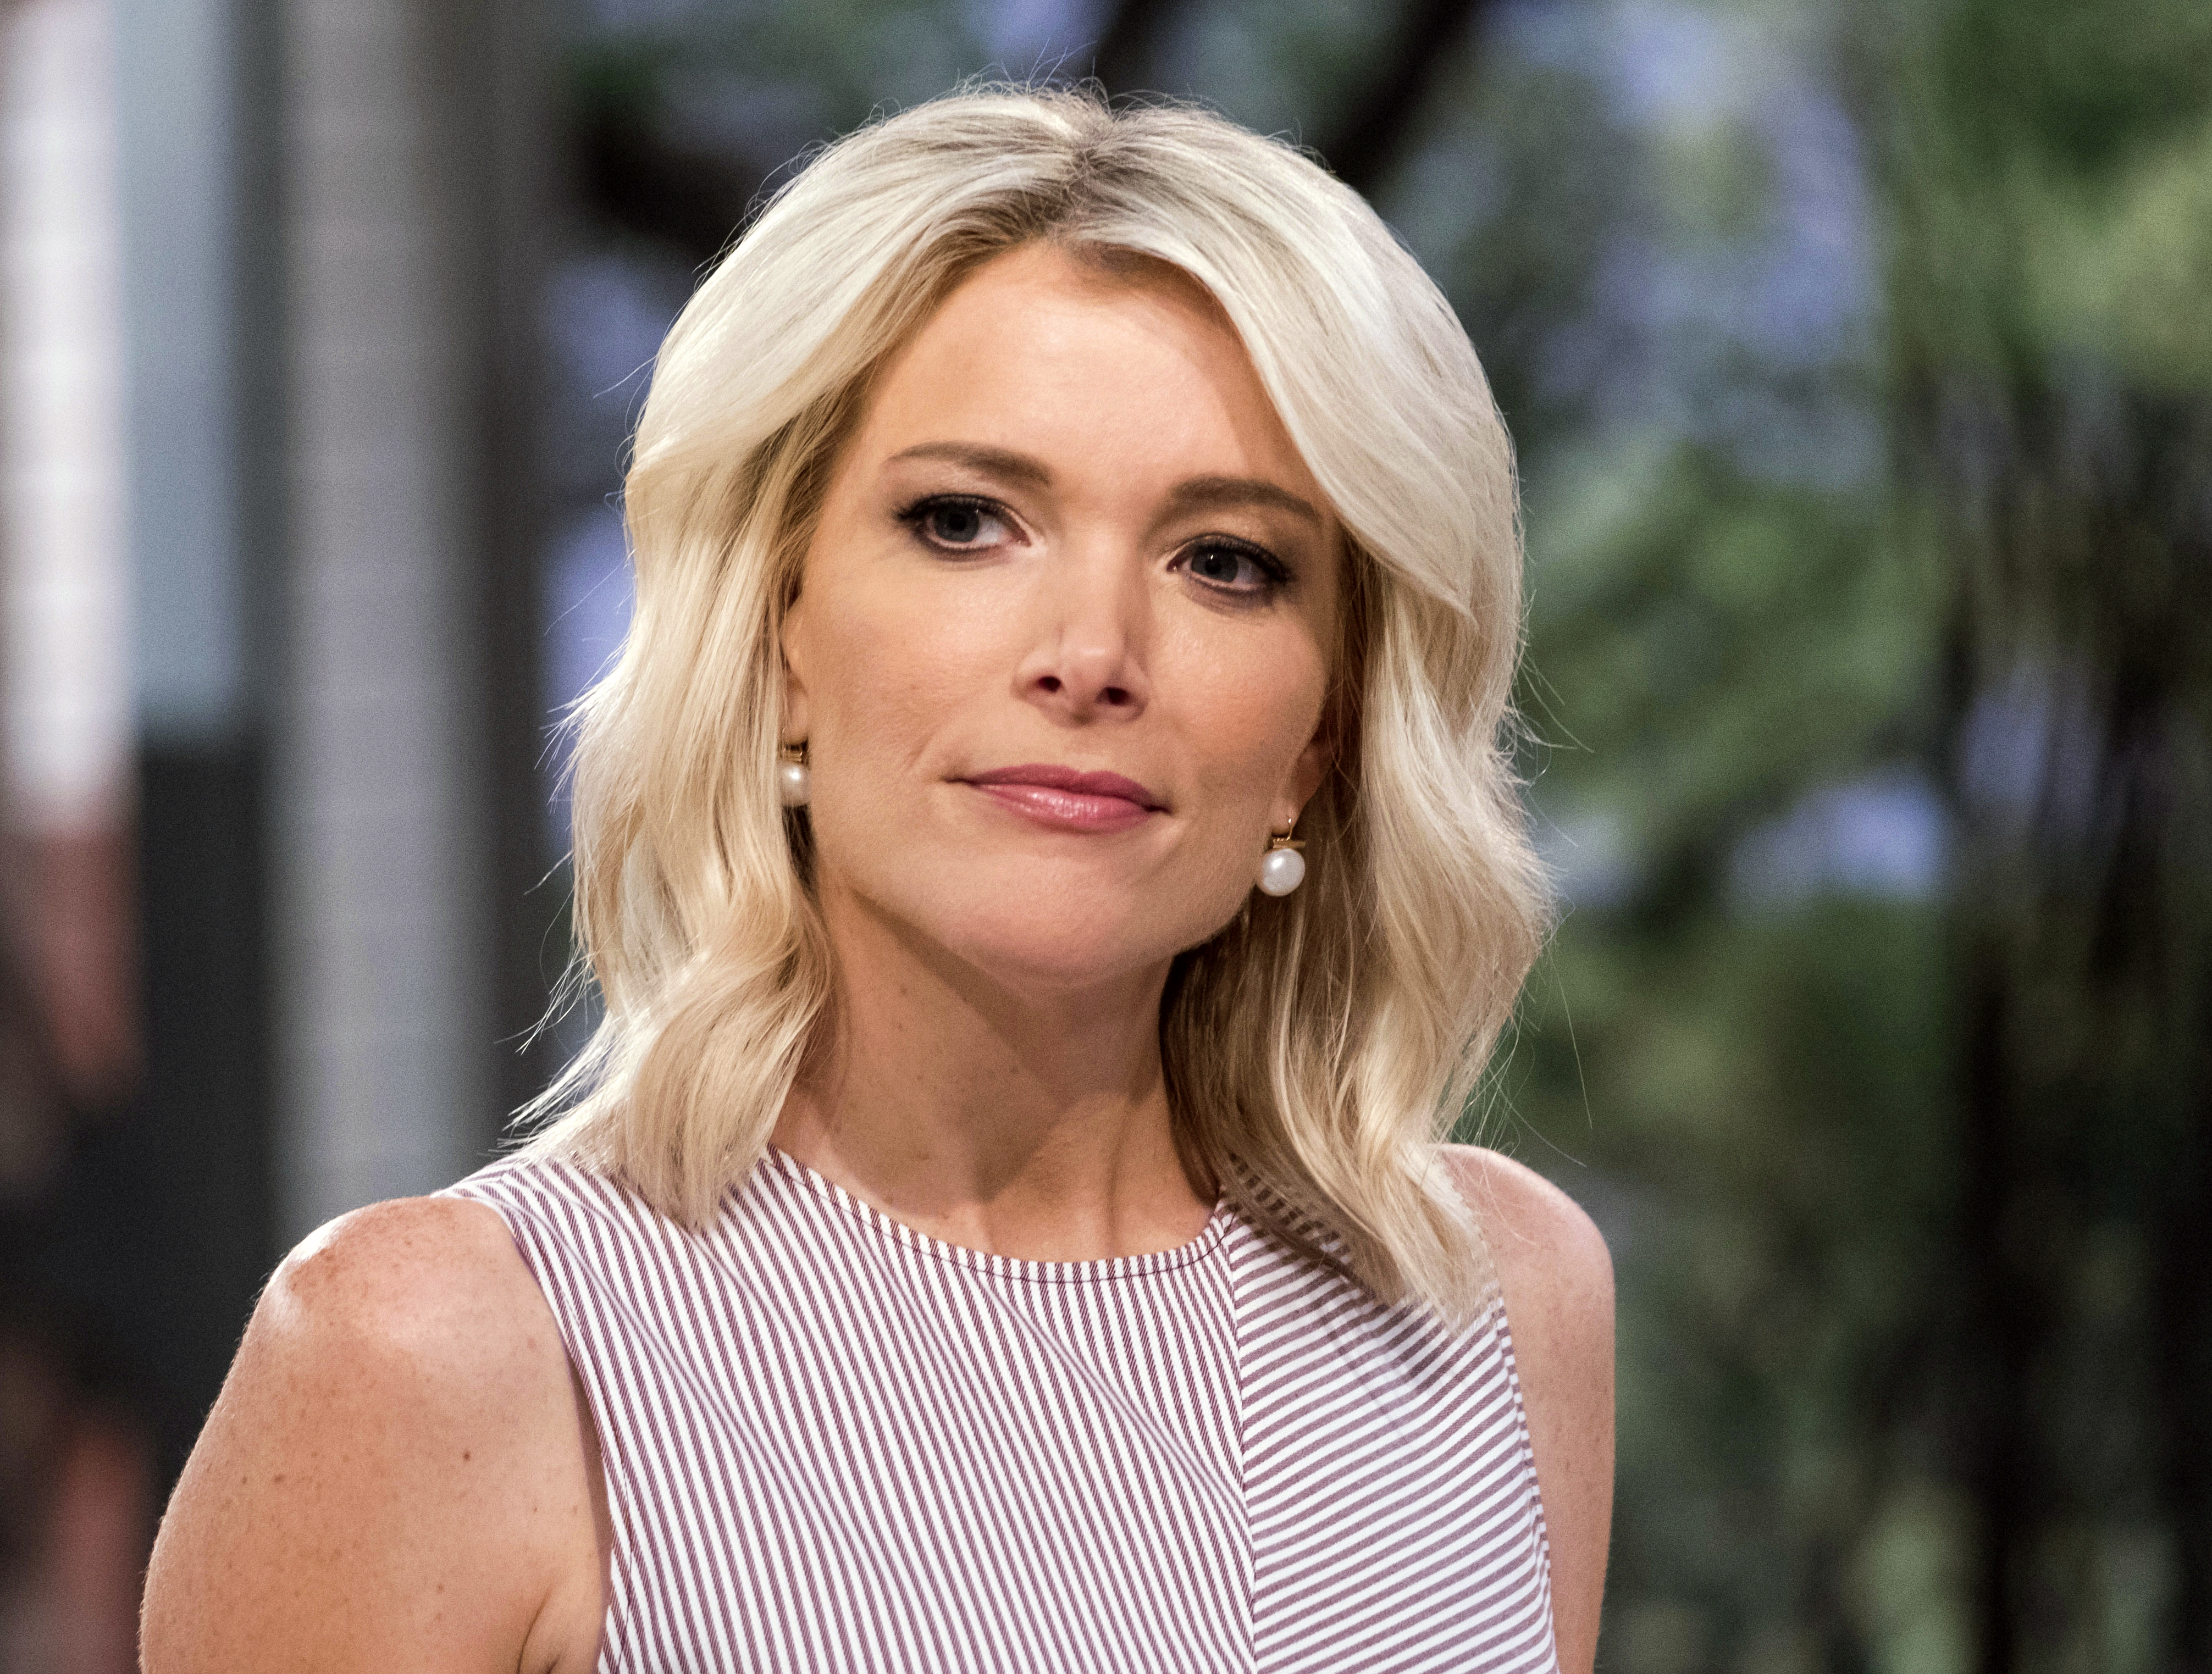 Just get rid of her': Megyn Kelly is again in trouble, but